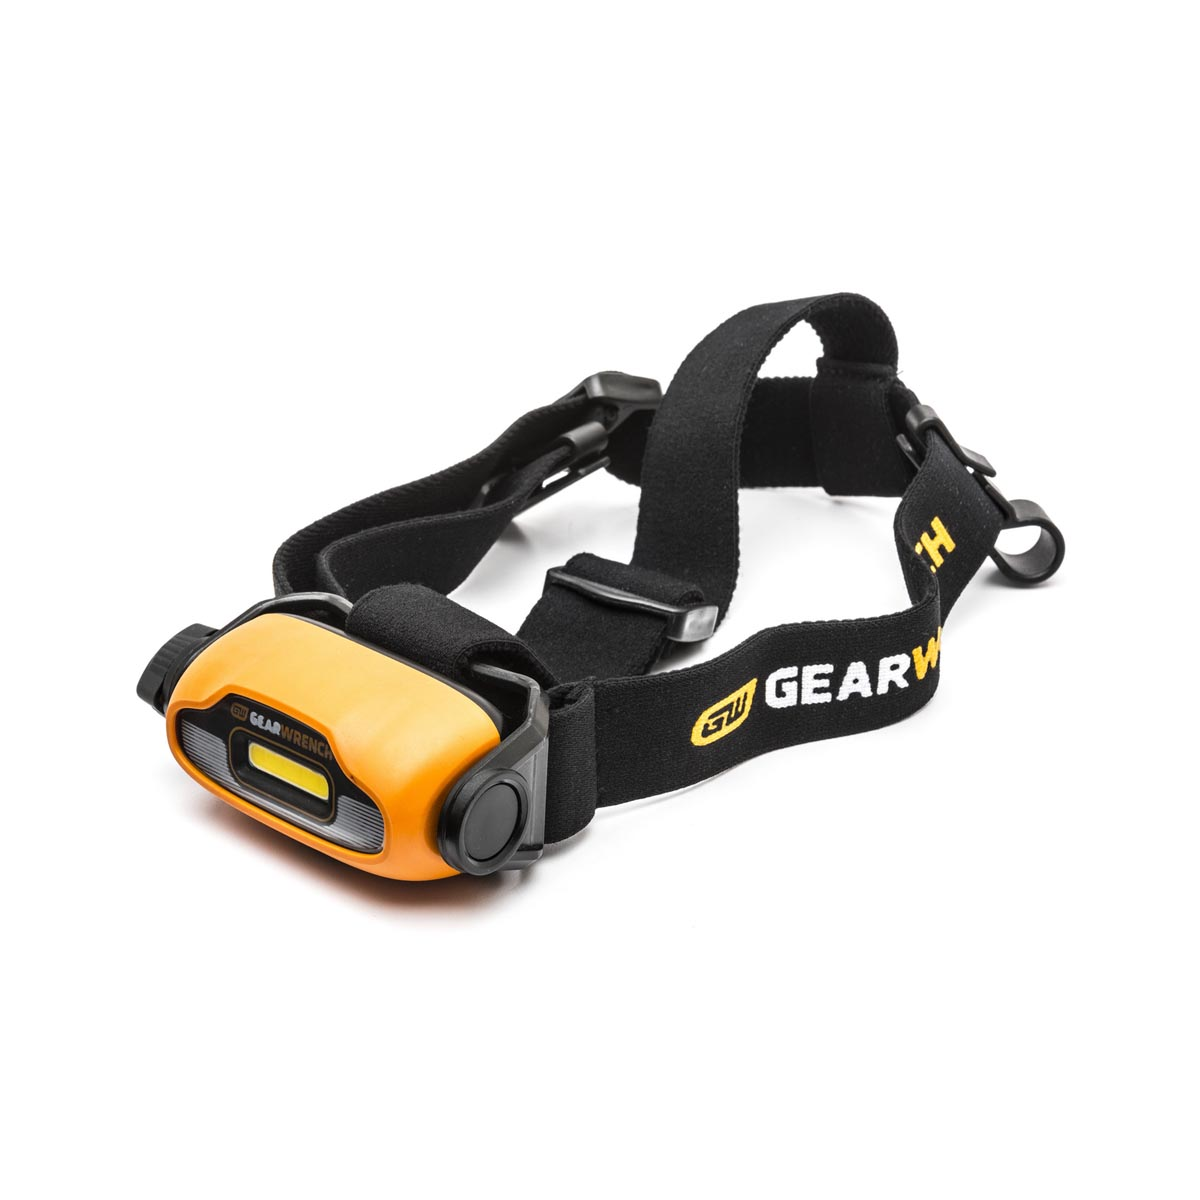 200 Lumen Rechargeable Head Lamp